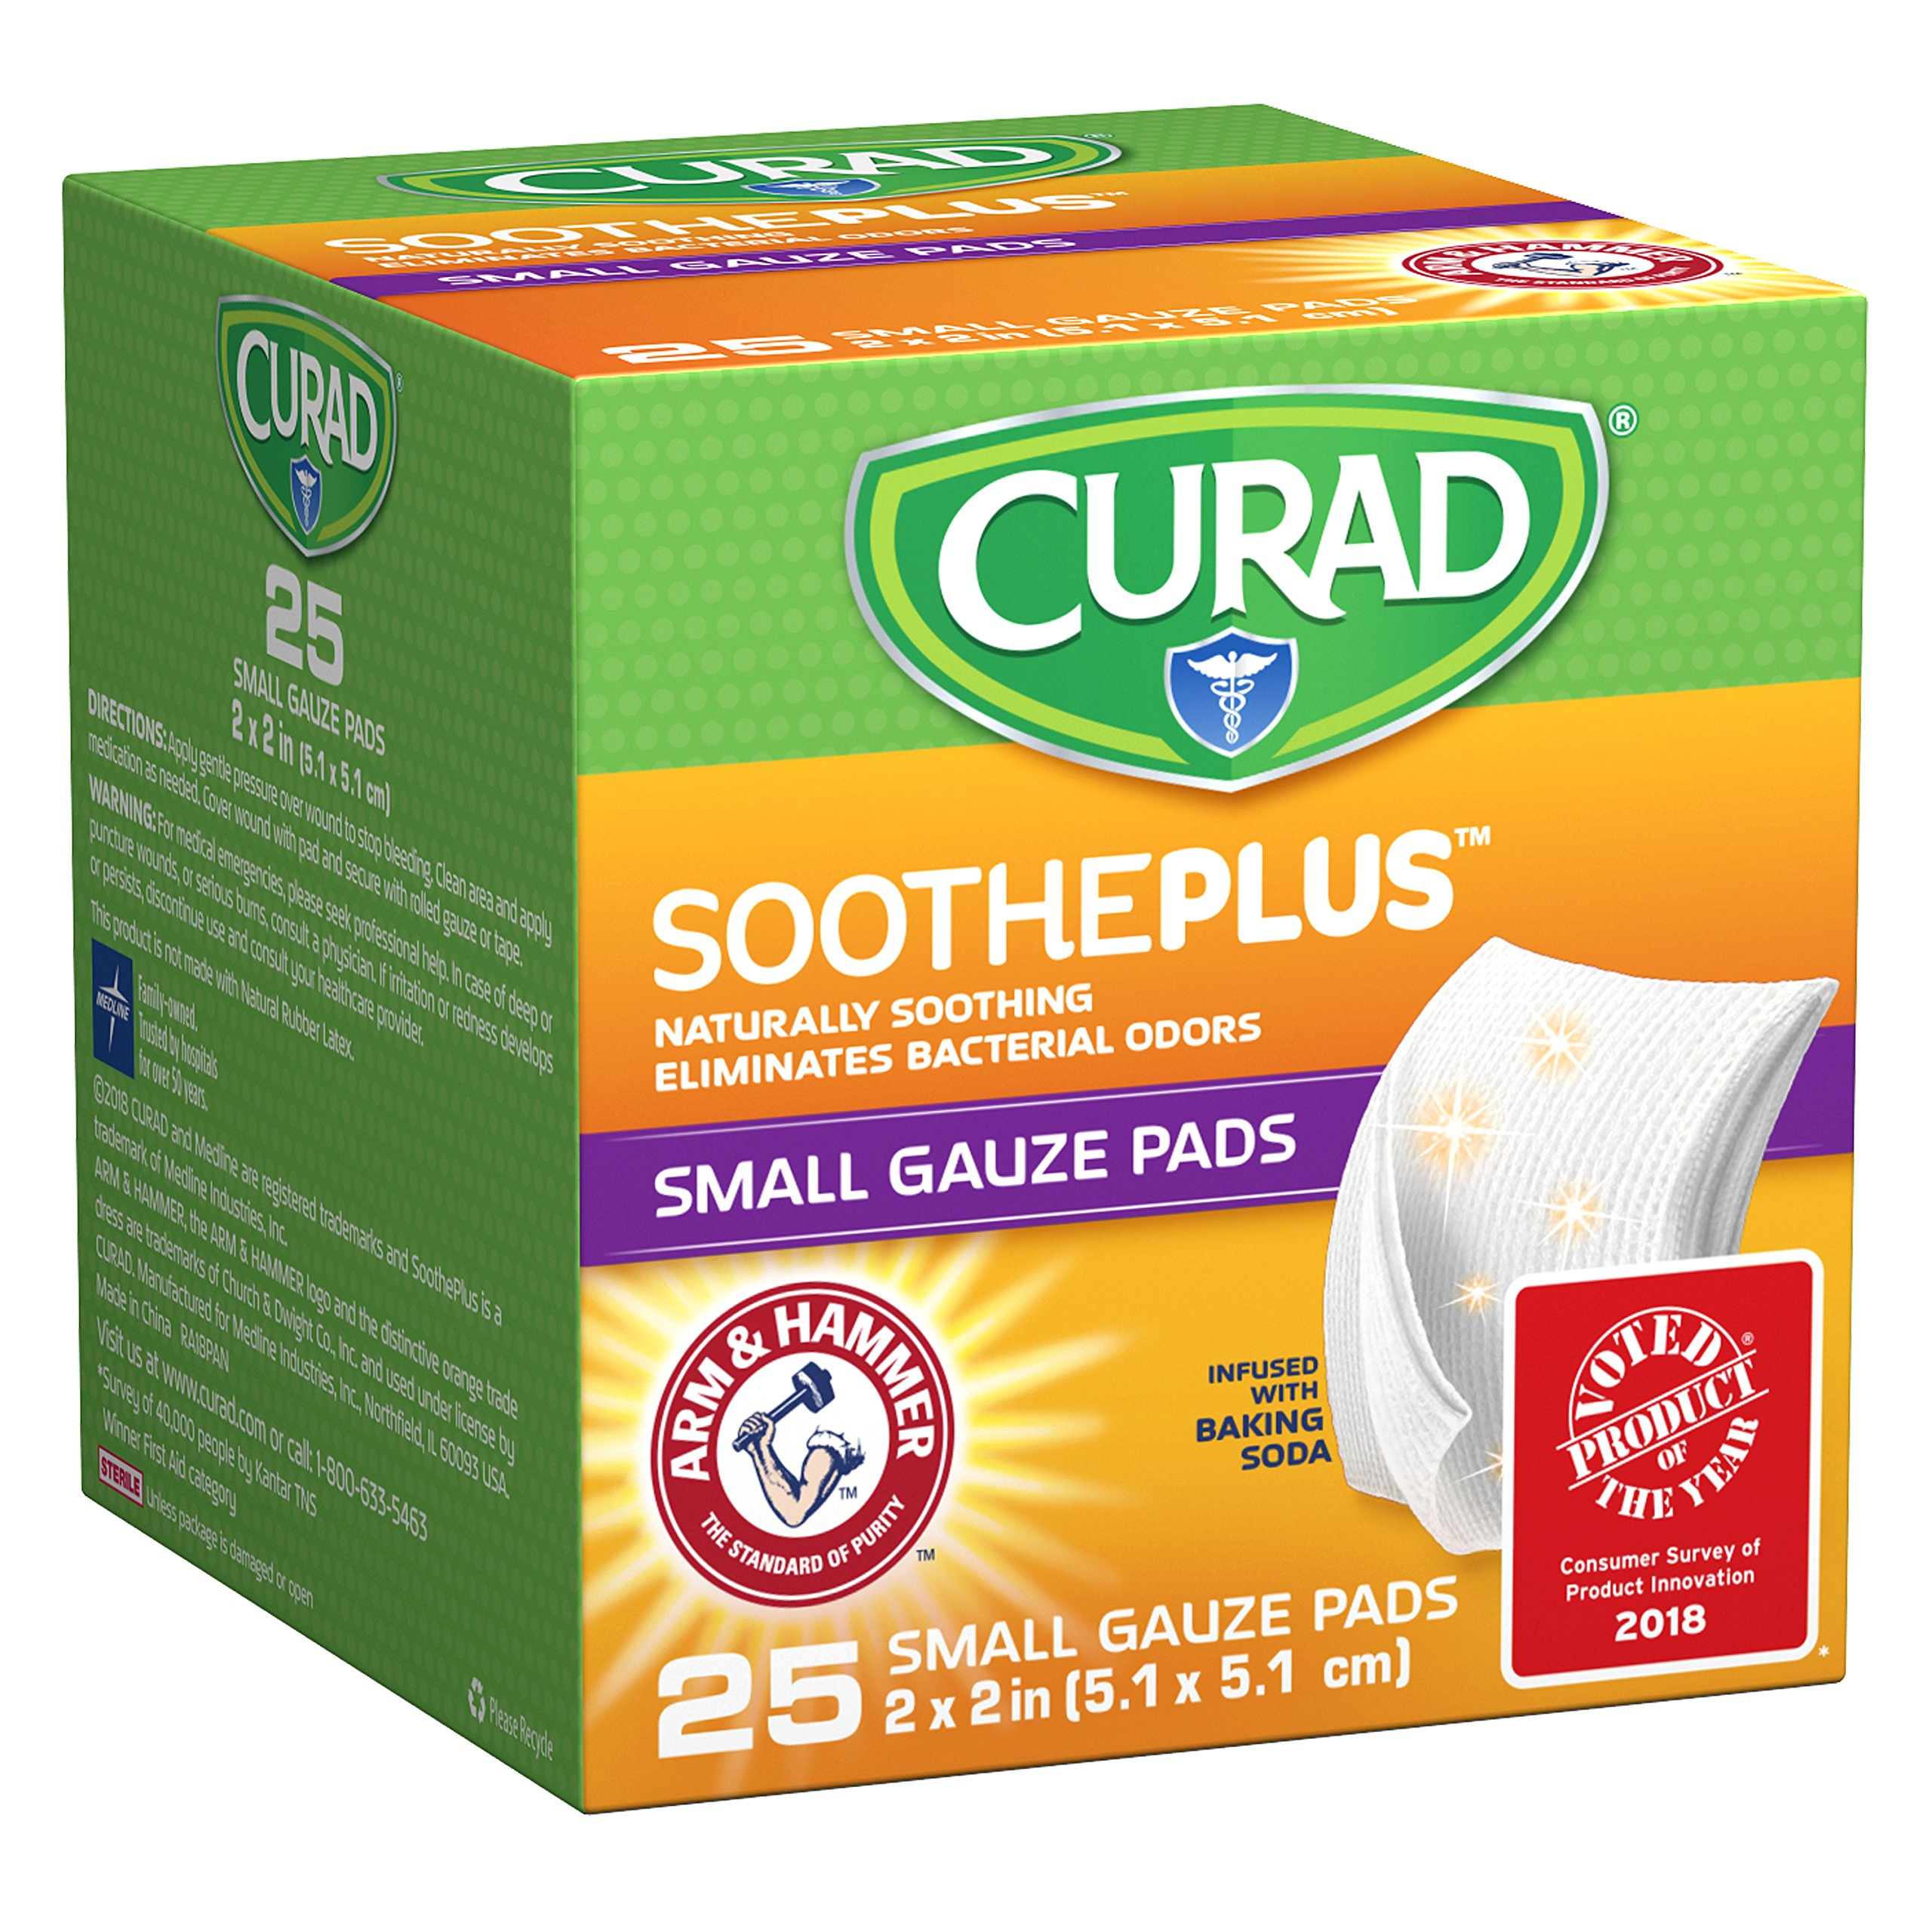 "Curad Sootheplus Gauze Pads with Arm & Hammer Baking Soda, 2"" X 2"", 25Count"